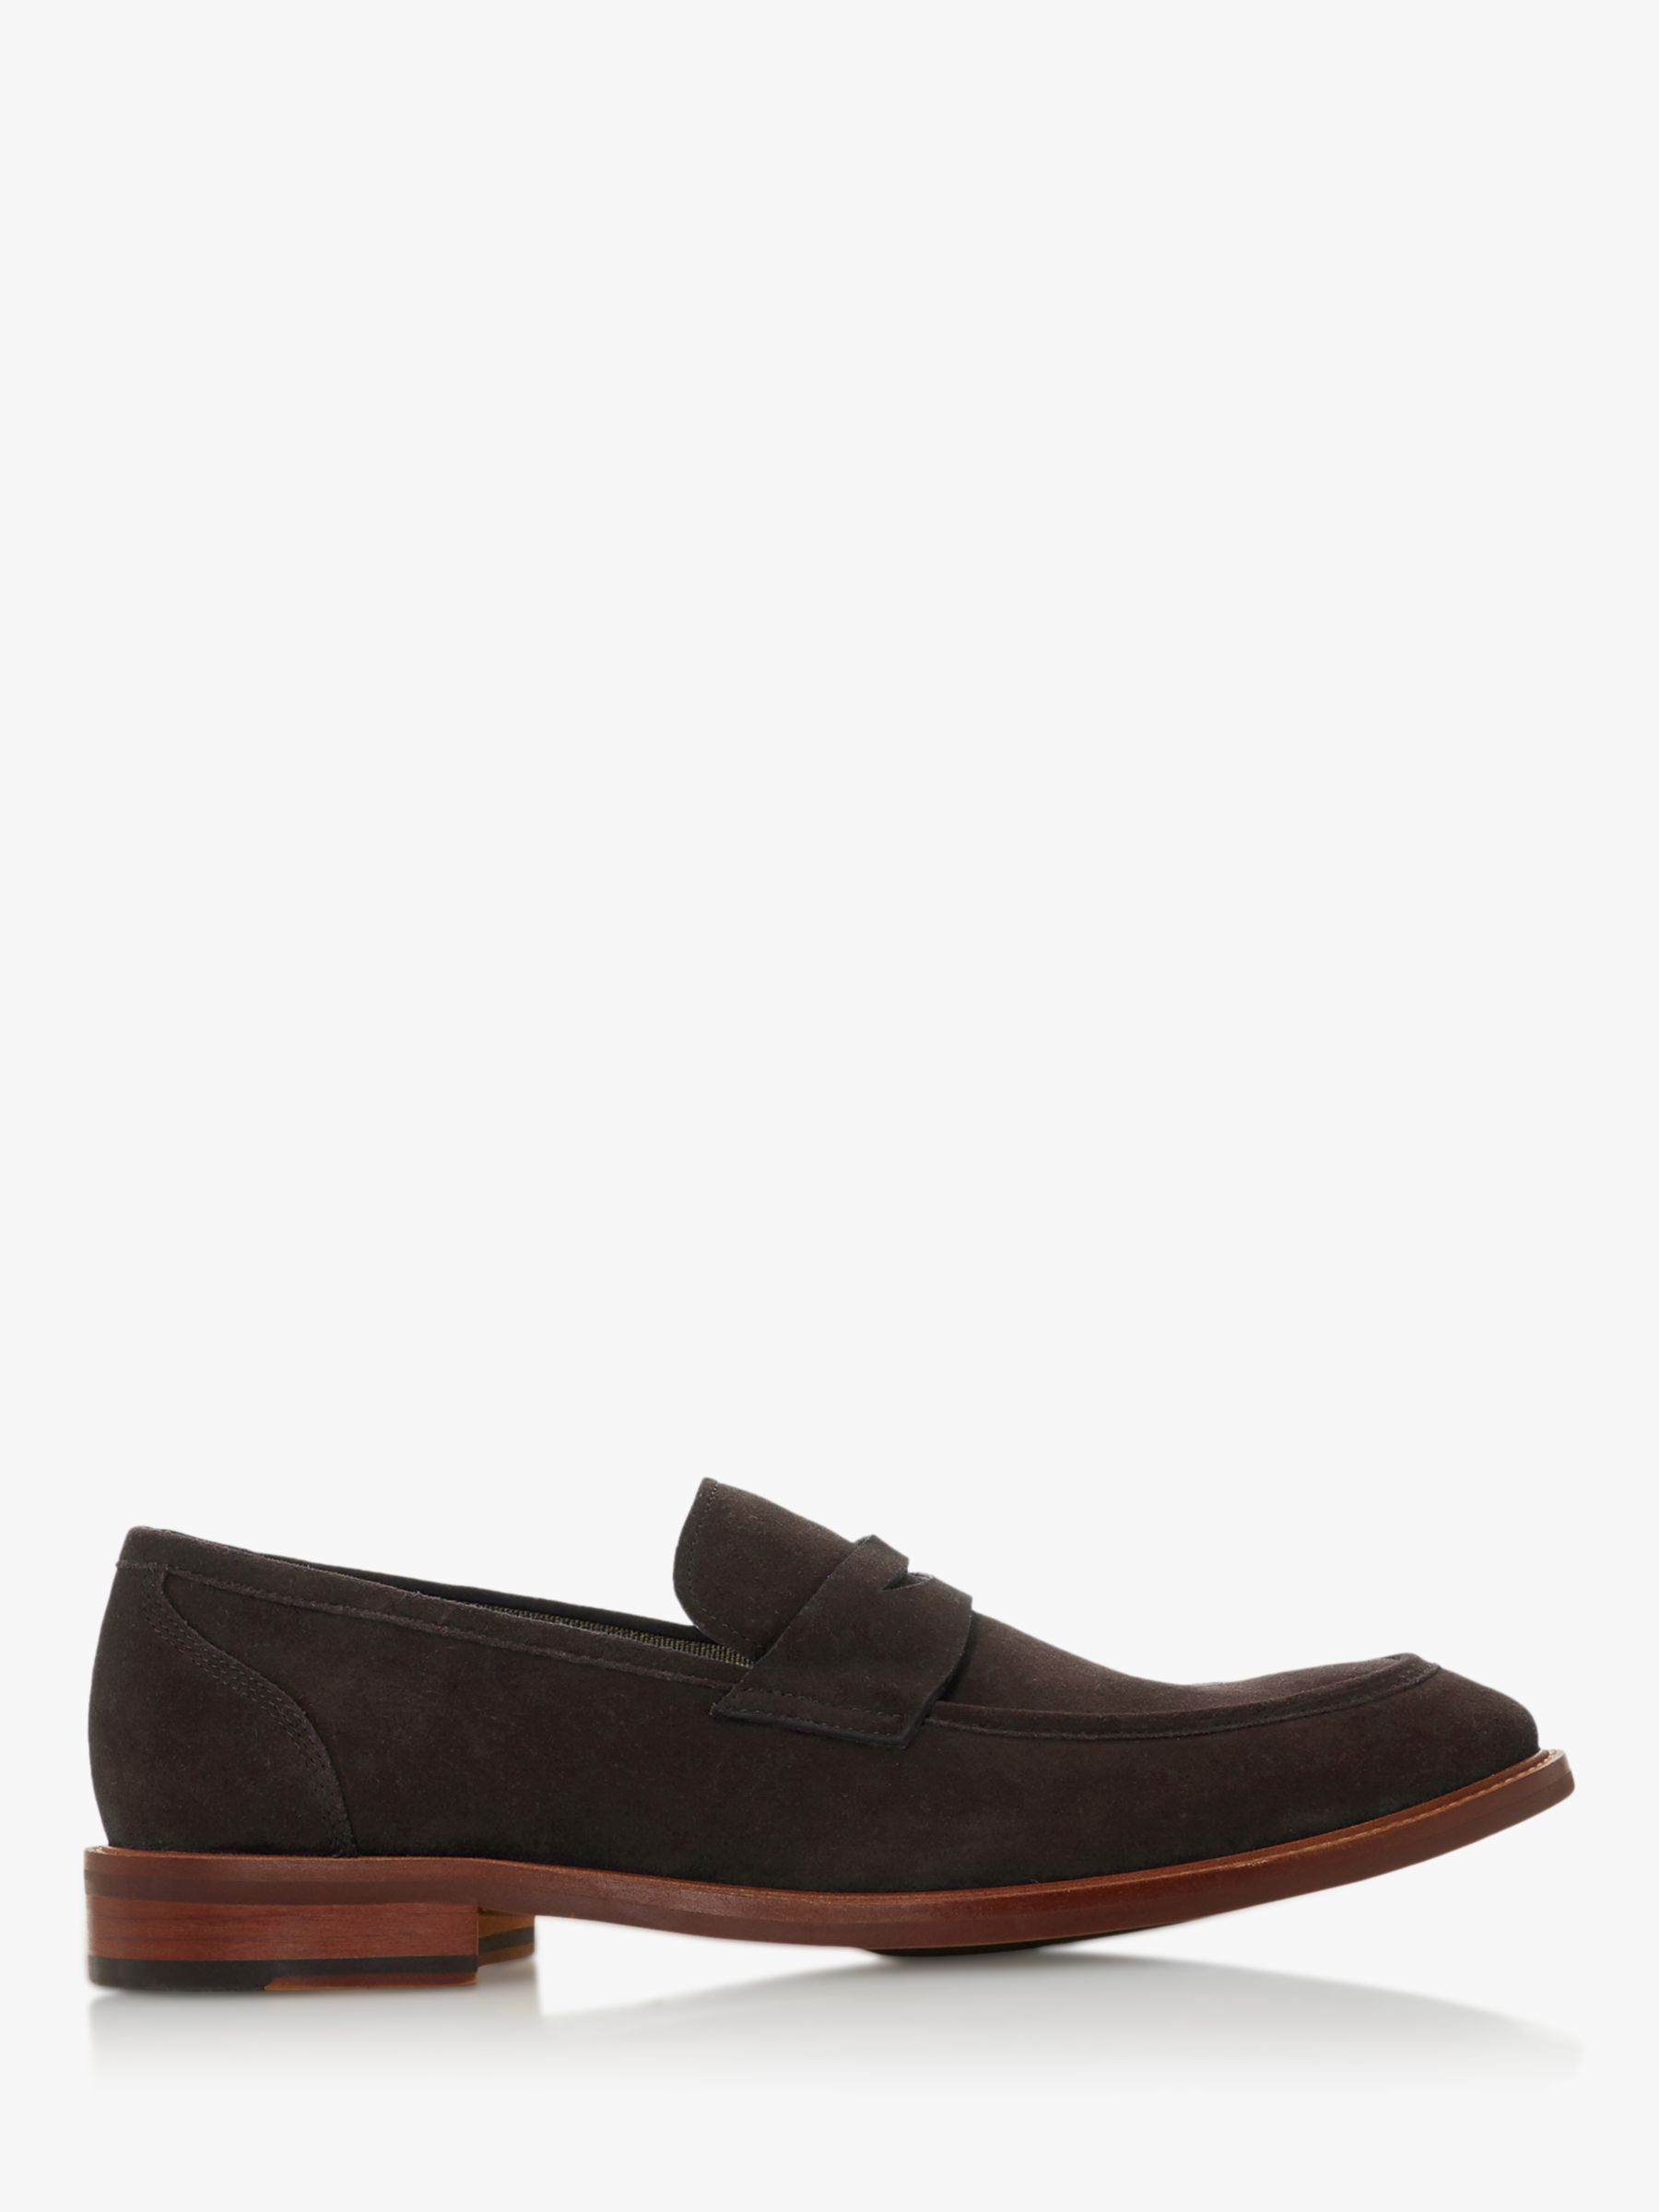 Dune Dune Basell Suede Penny Loafers